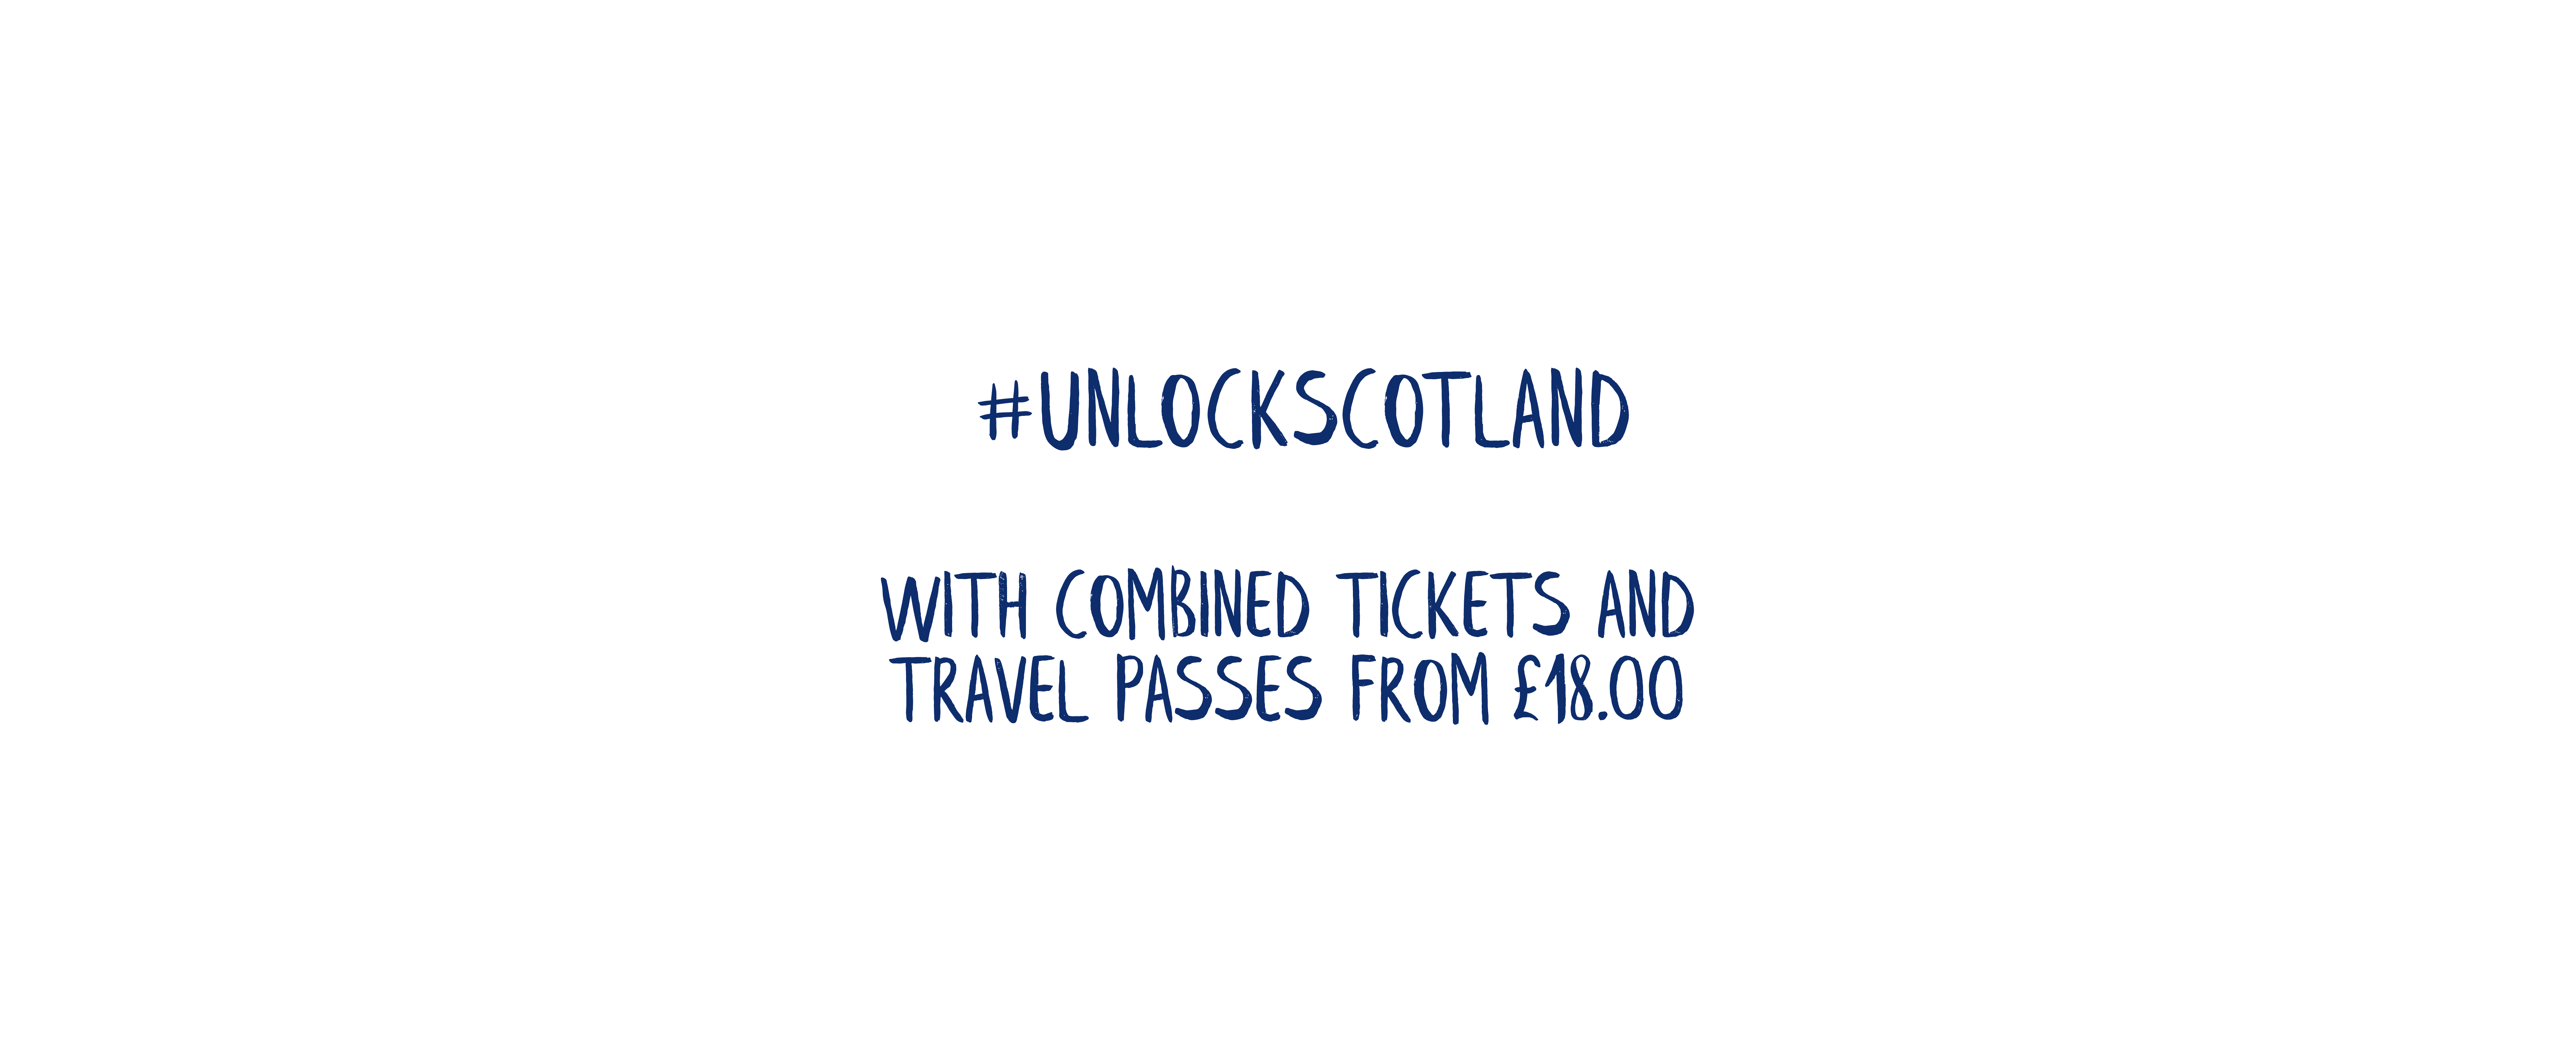 #UNLOCK SCOTLAND WITH COMBINED TICKETS AND TRAVEL PASSES FROM £18.00